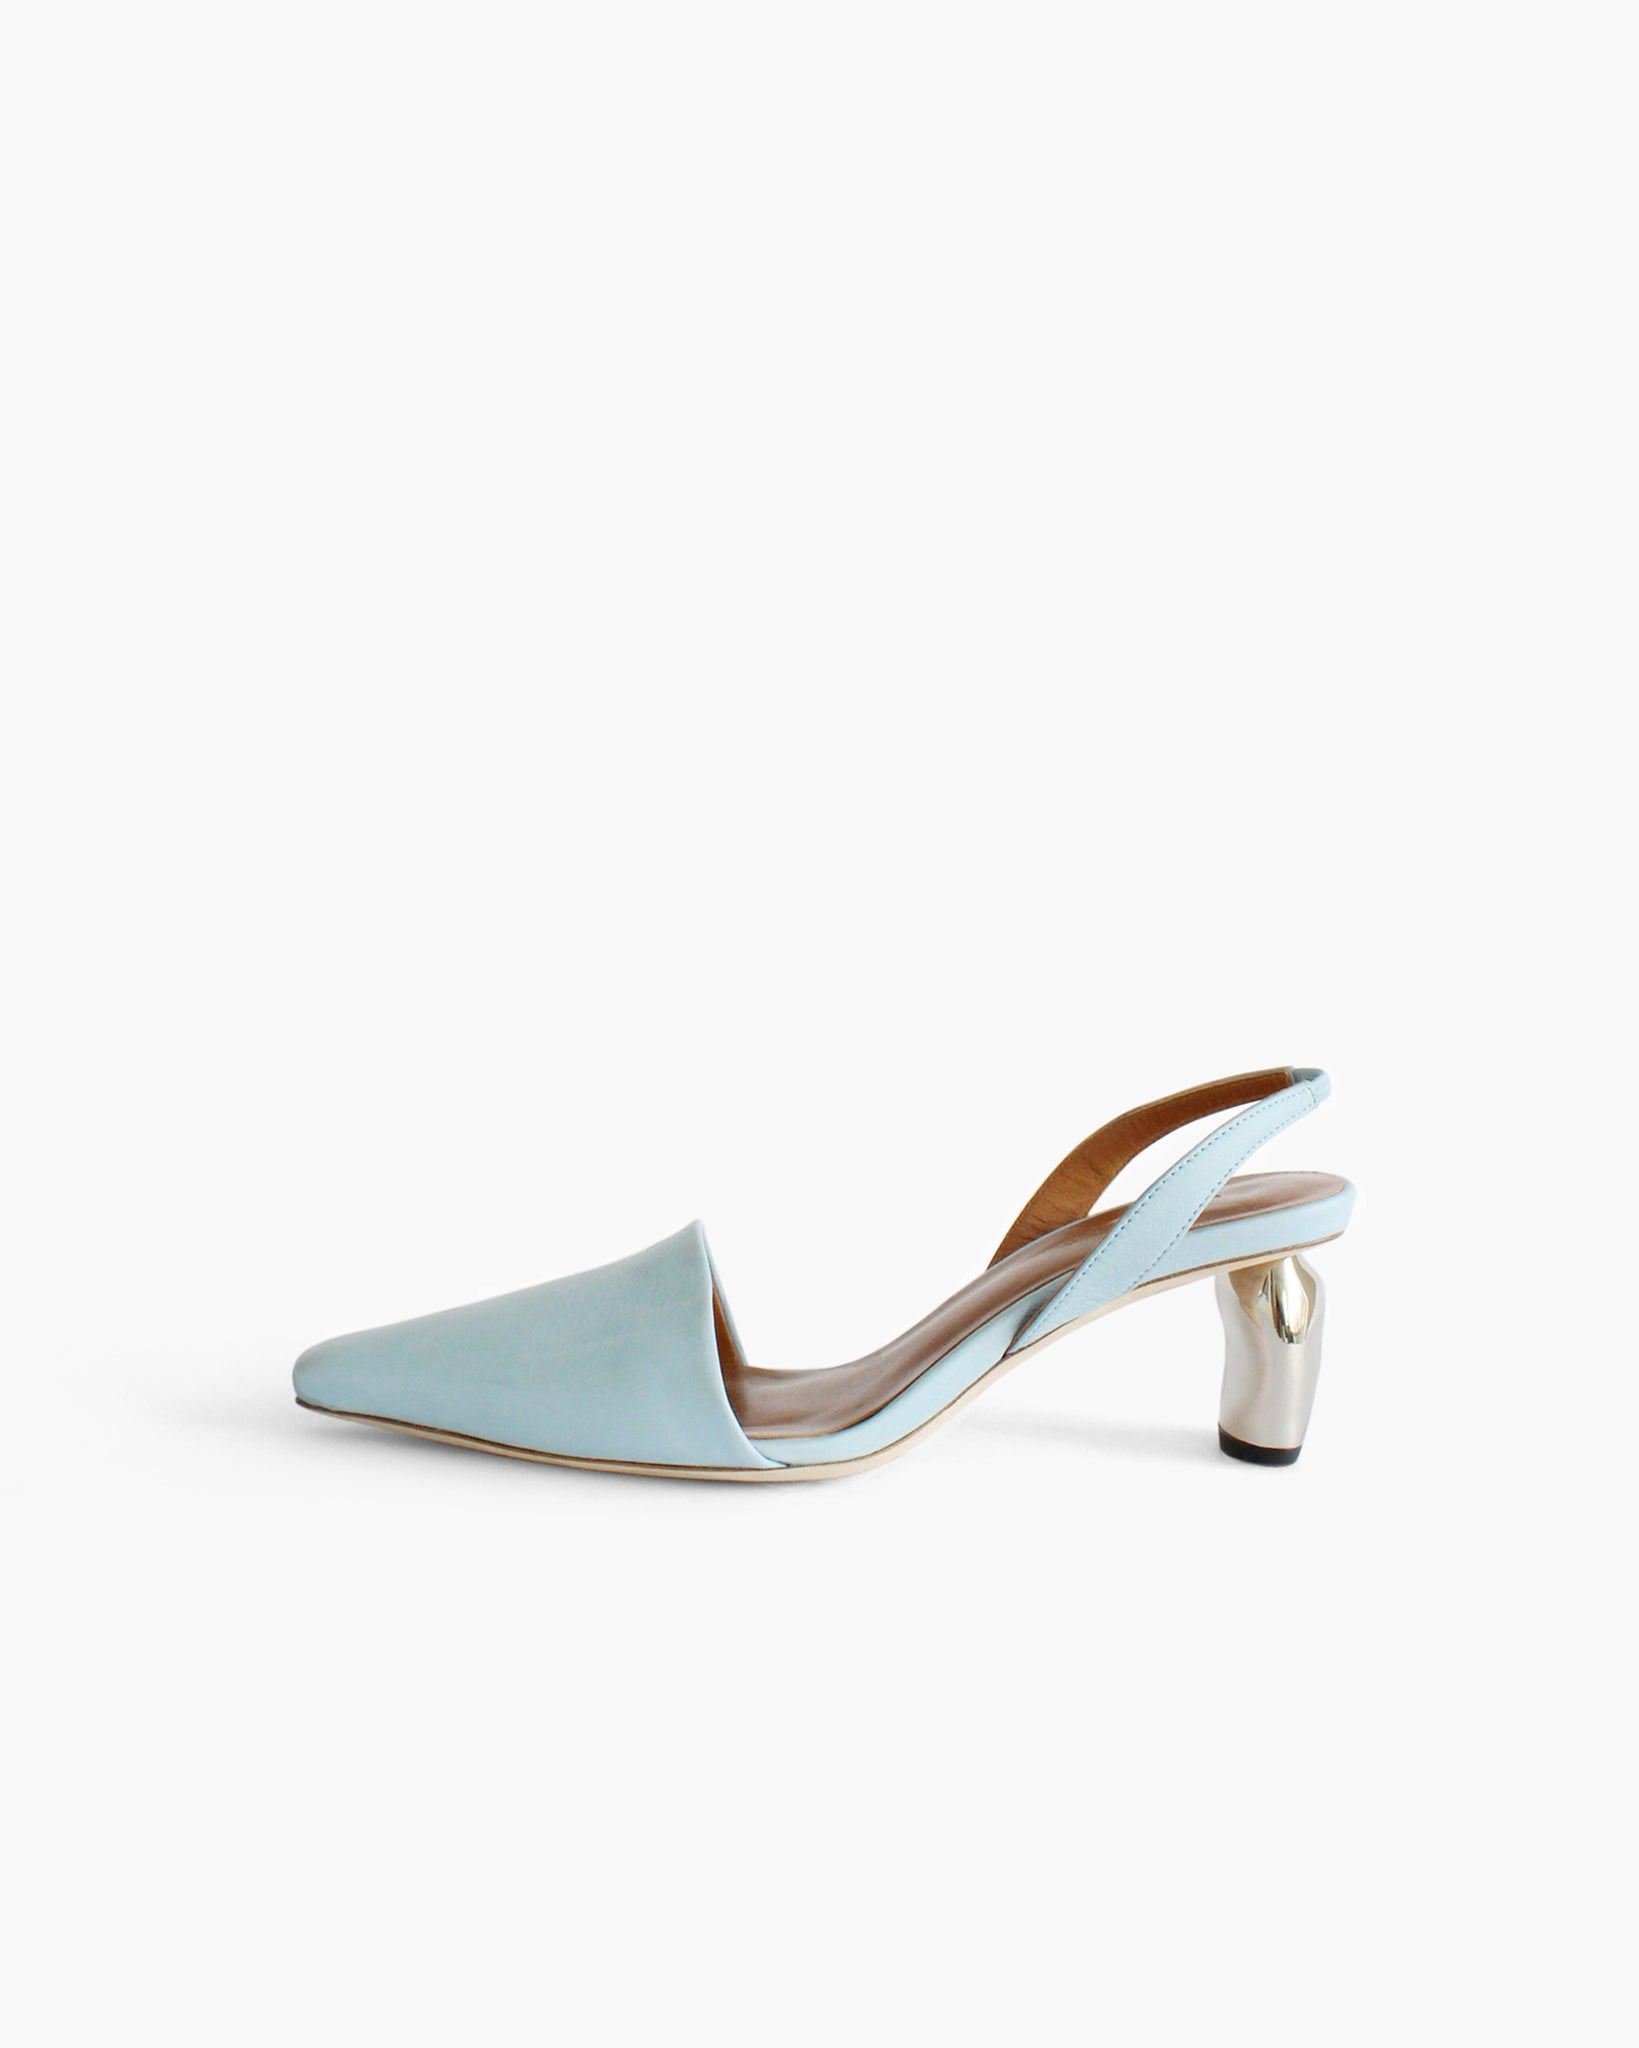 Conie Slingbacks Heels Leather Blue